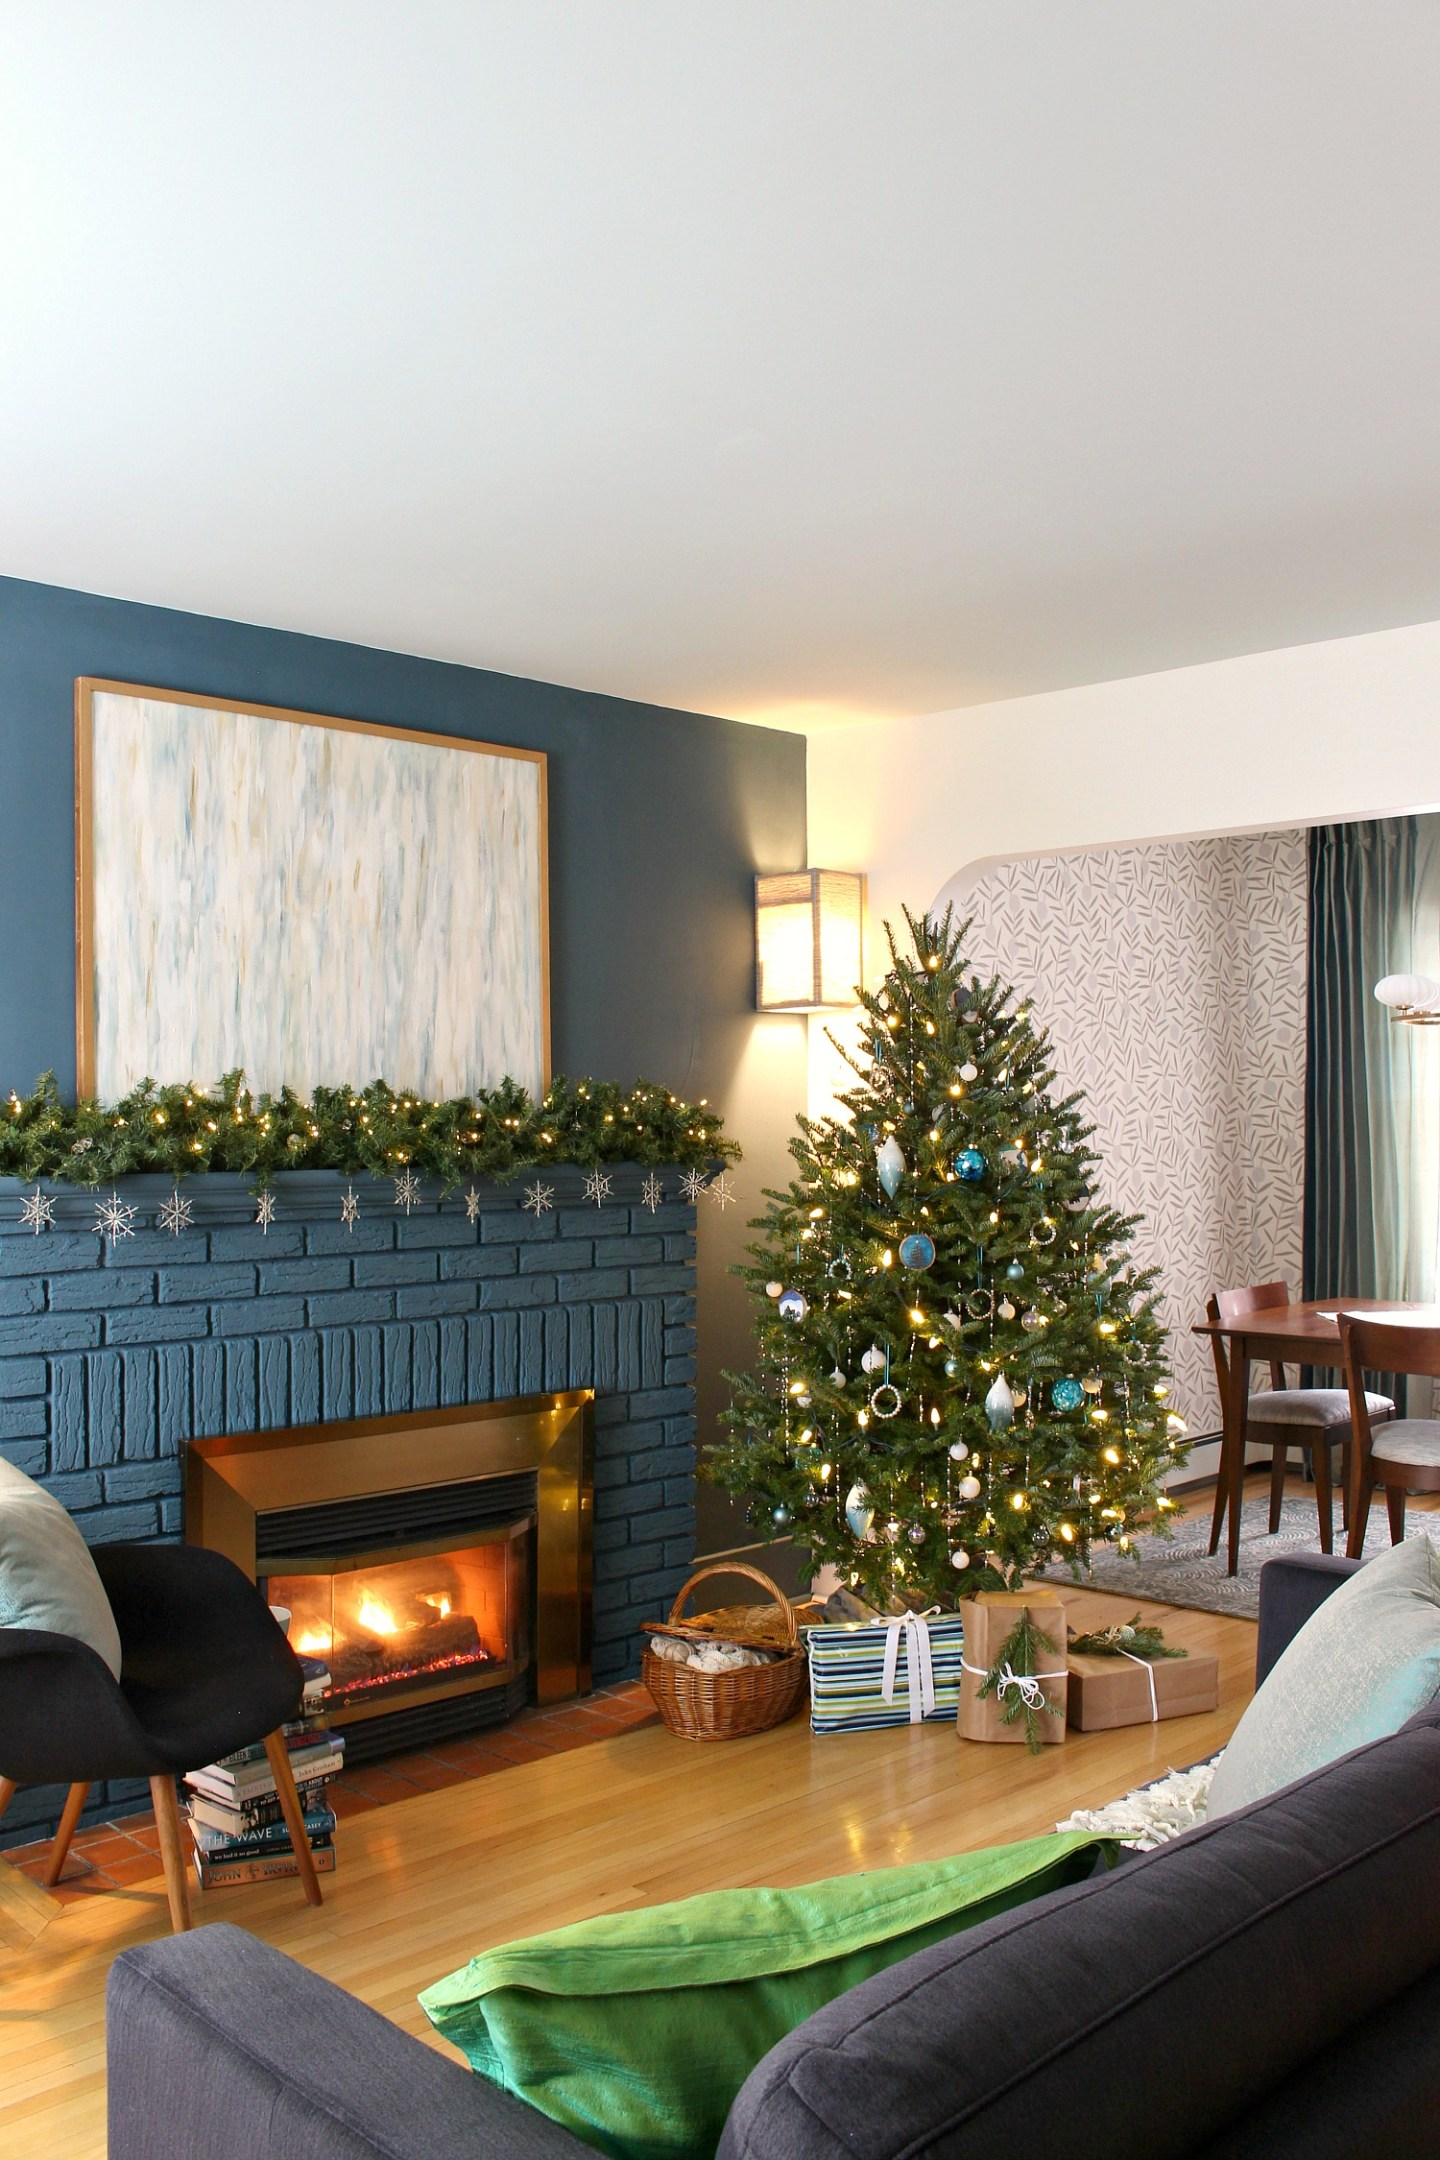 Teal and White Christmas Tree Theme Inspired by Lake Superior